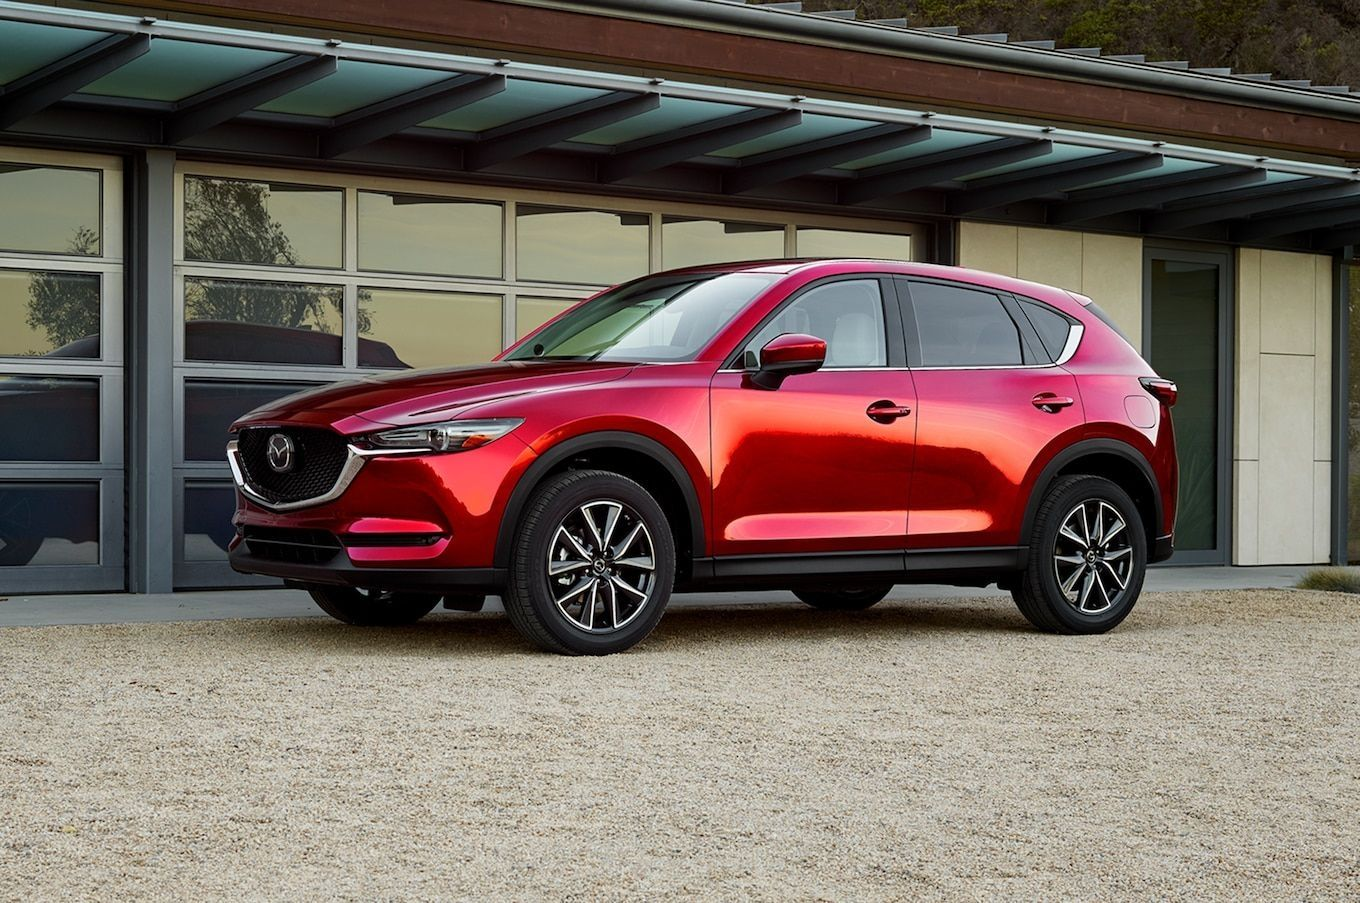 New 2019 Mazda 5 First Drive Cars Review 2019 Mazda Turbo Motor New Cars